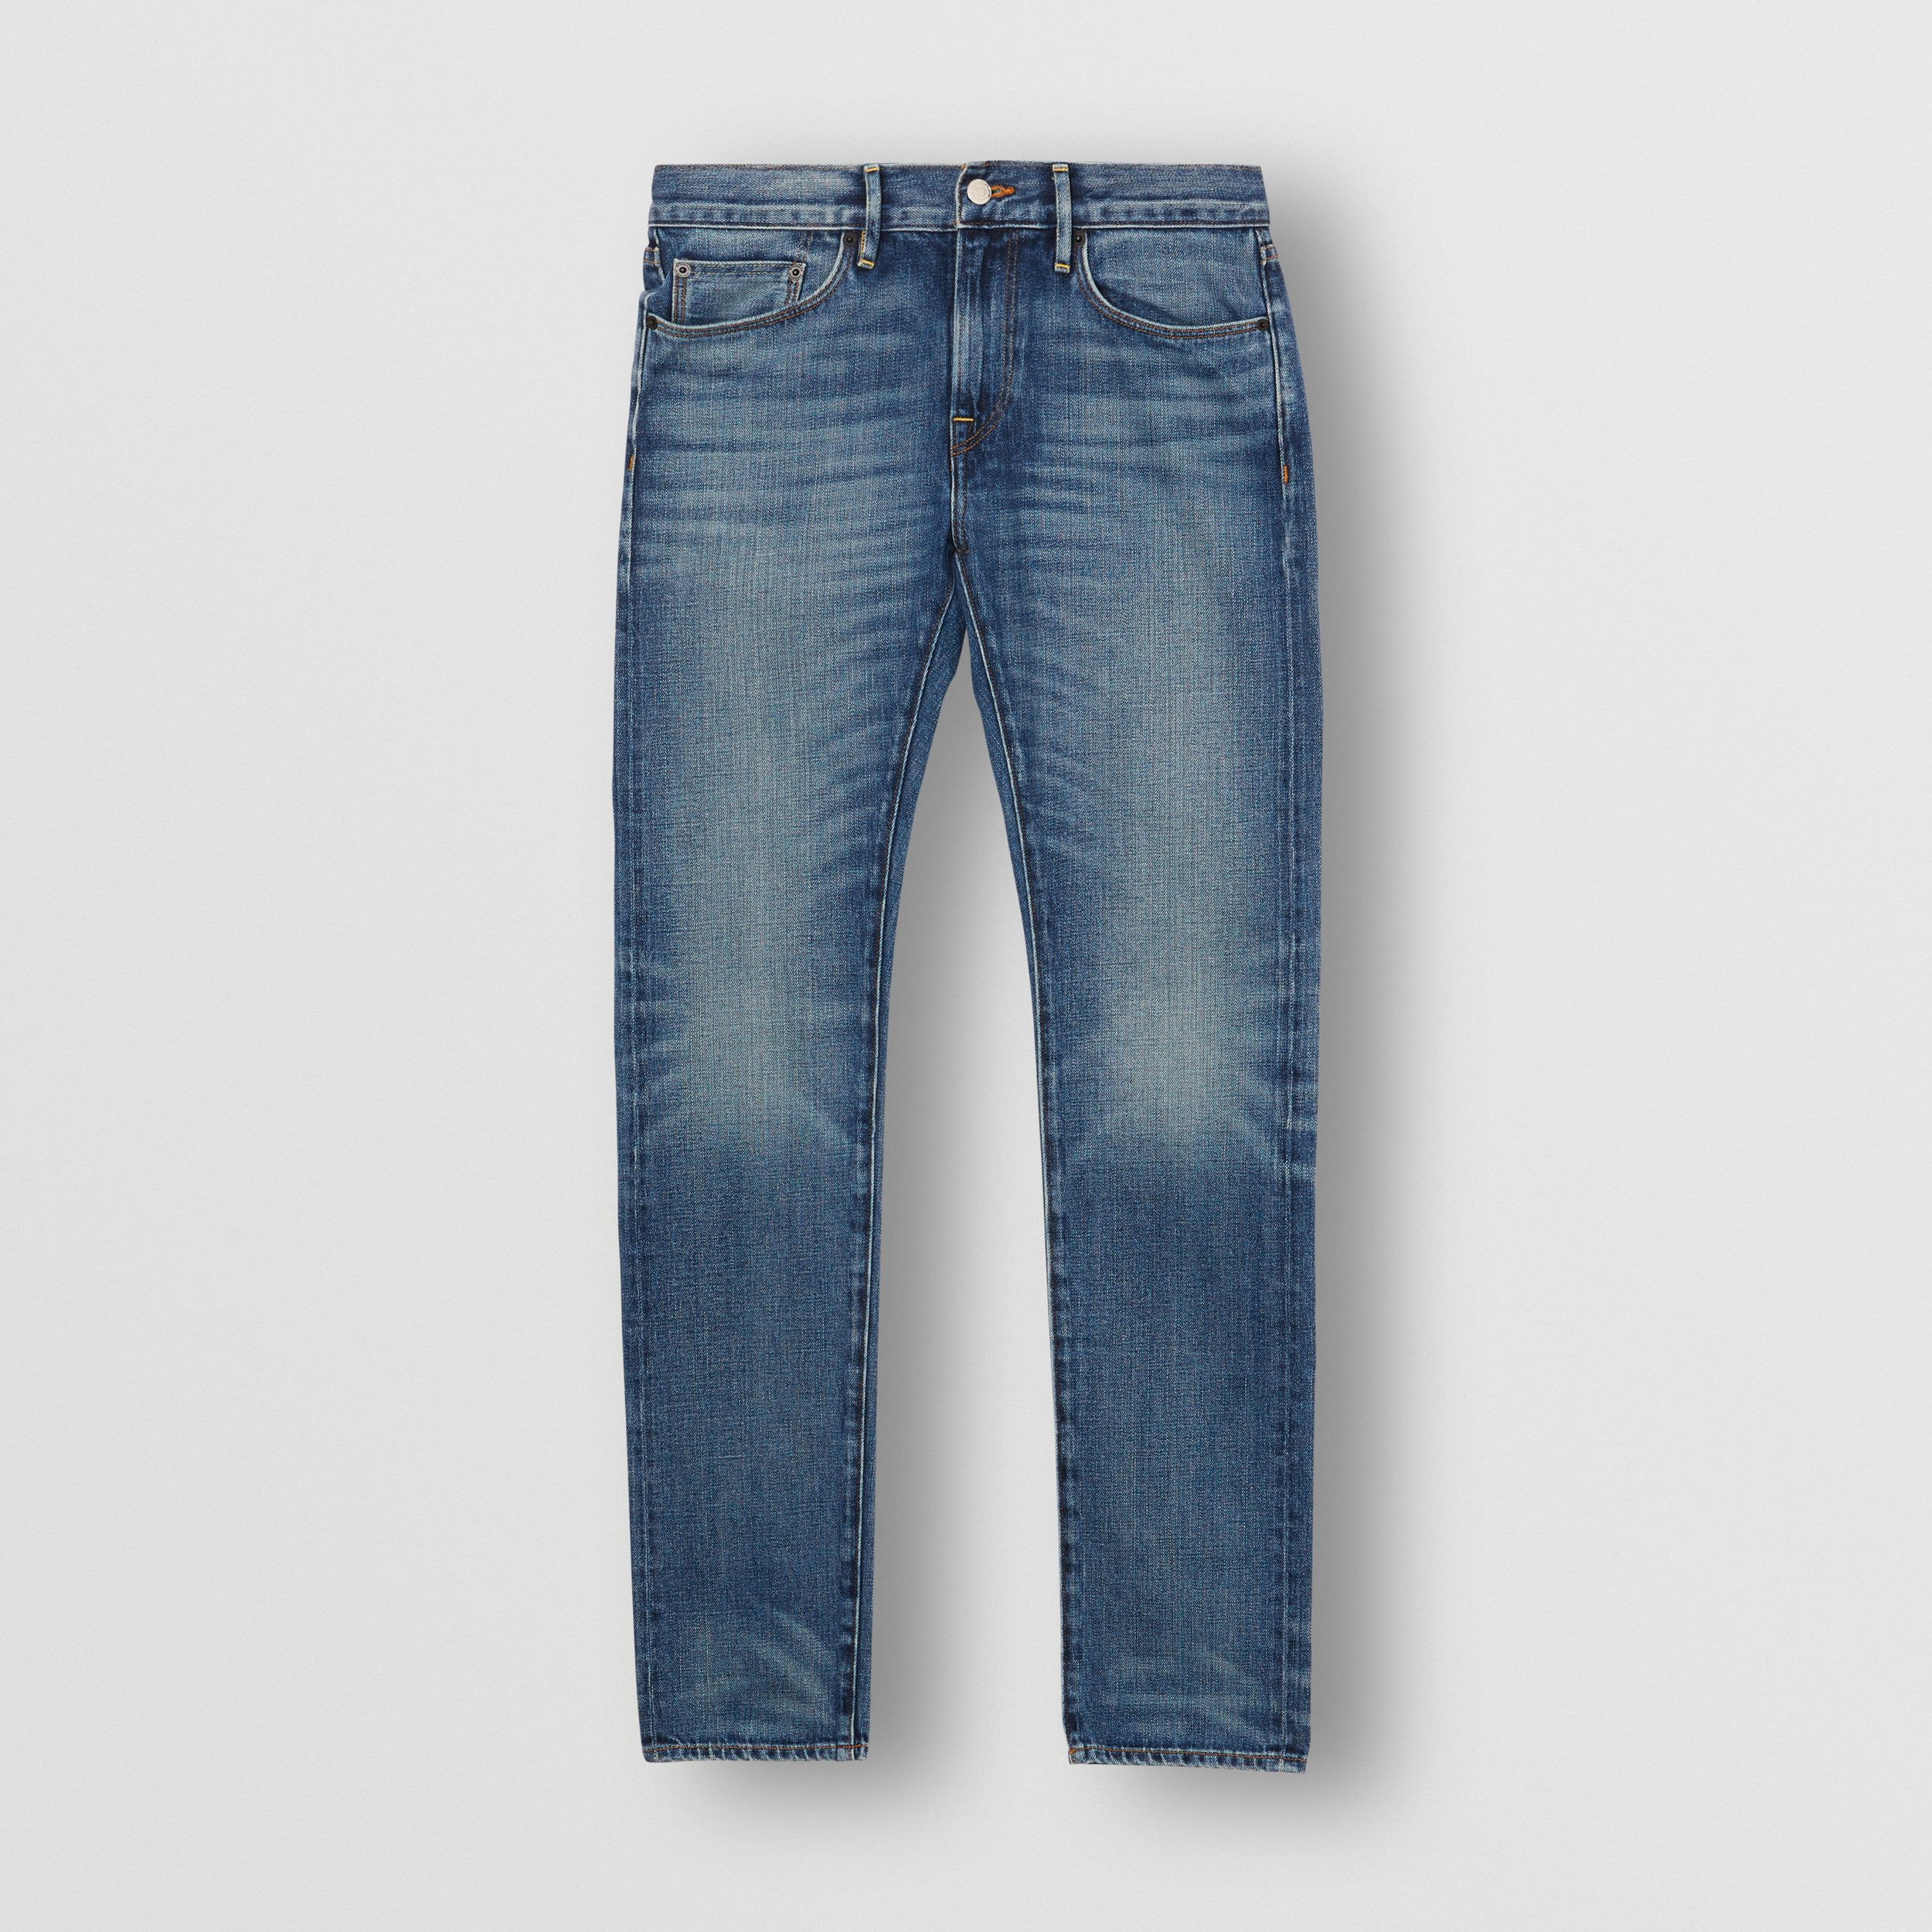 Slim Fit Washed Japanese Selvedge Denim Jeans in Light Indigo - Men | Burberry - 4